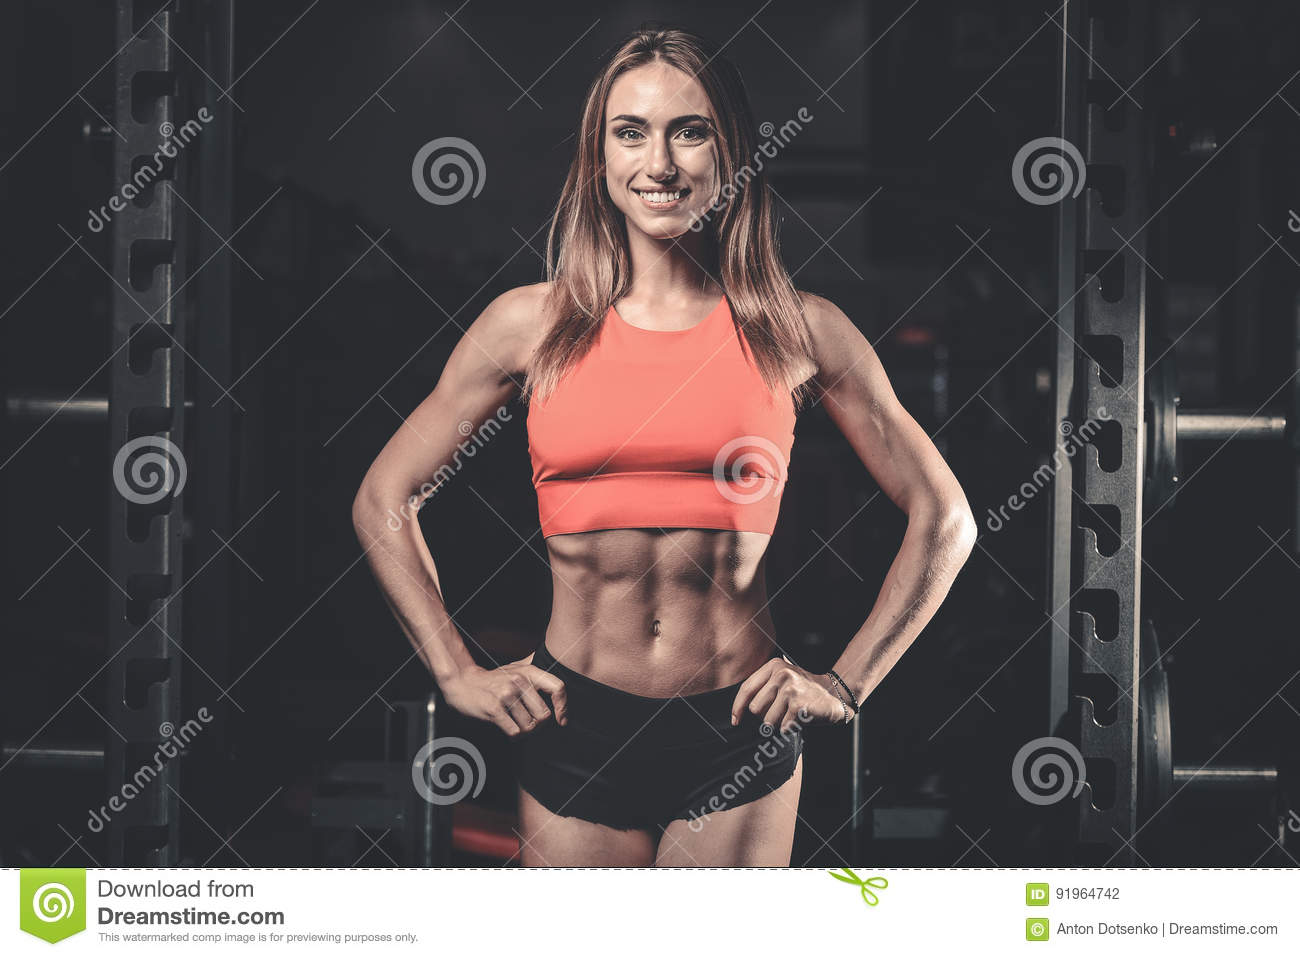 Caucasian fitness female model in gym close up abs